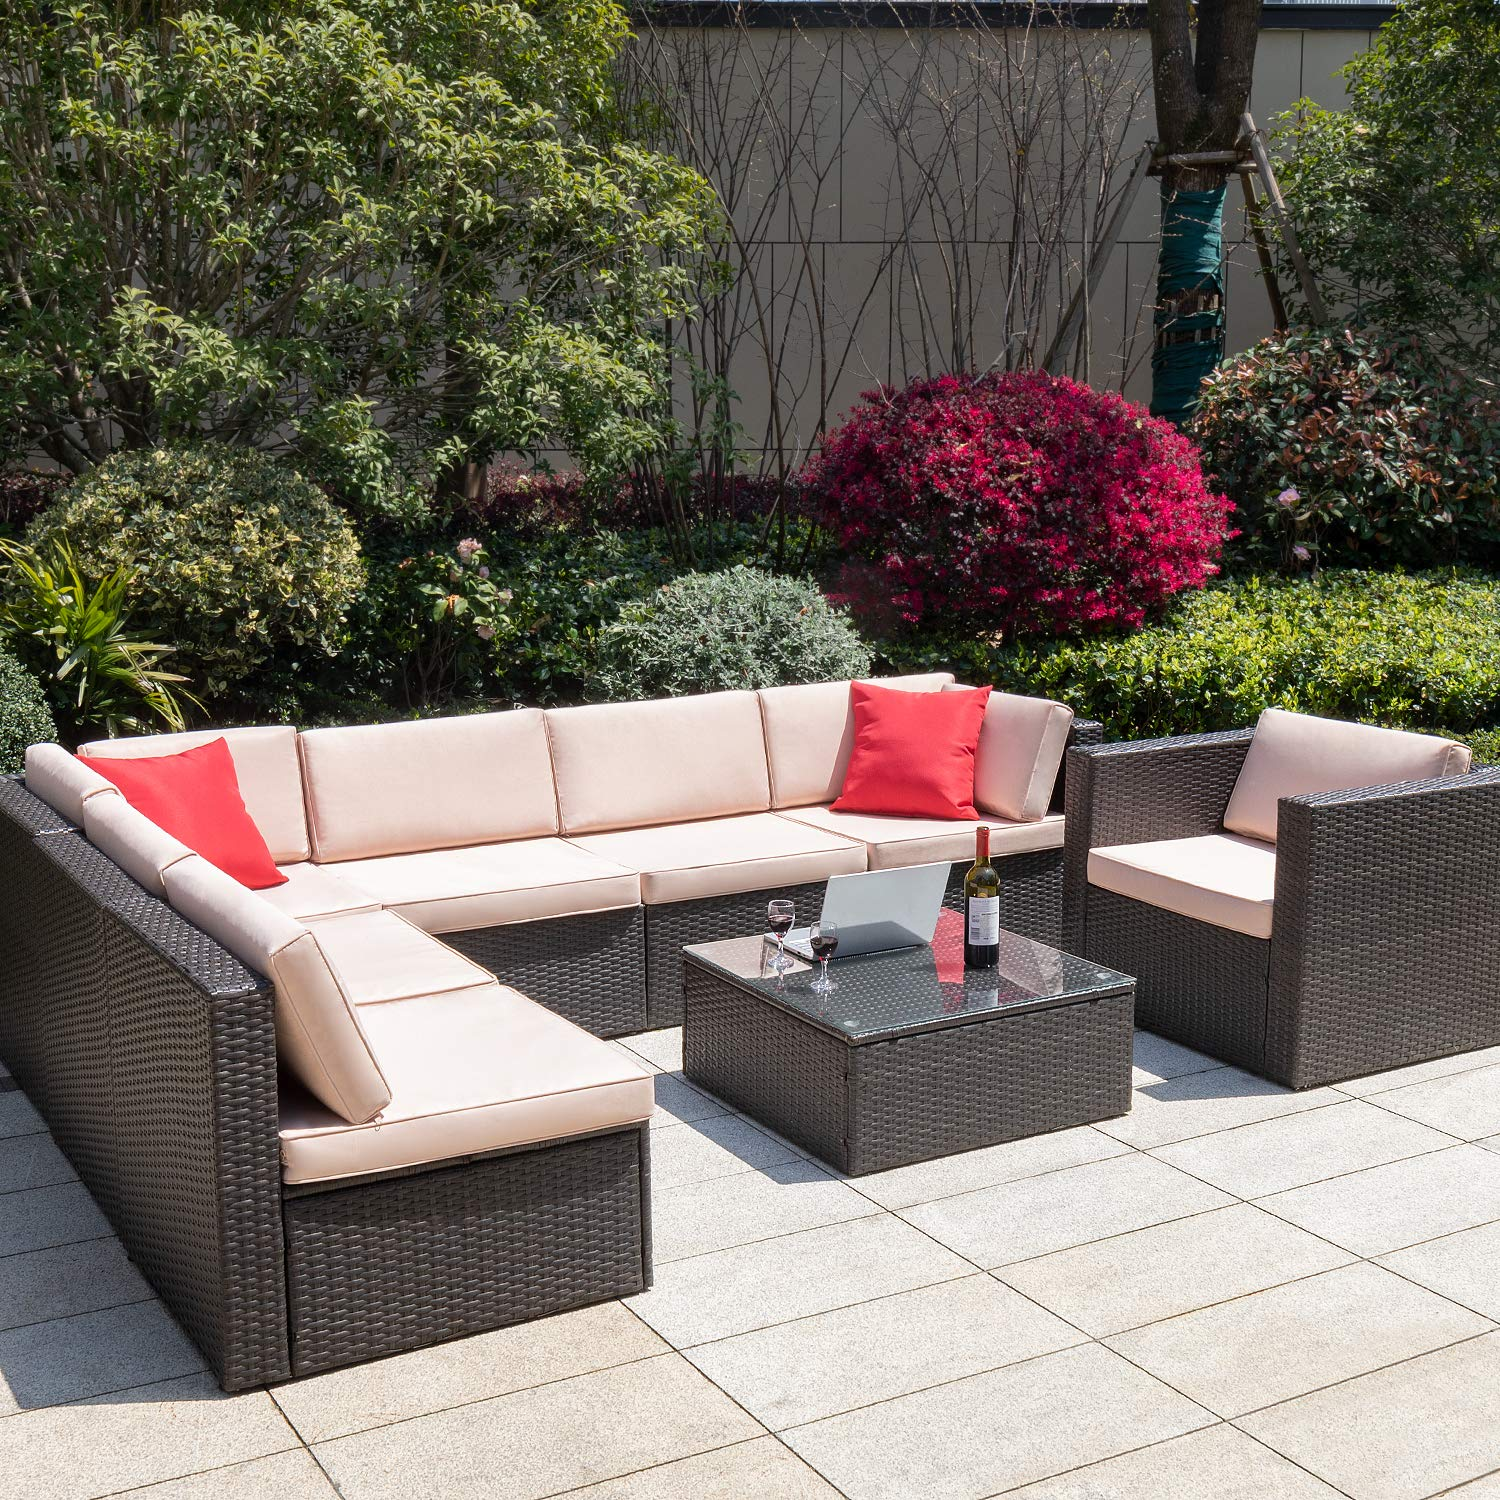 walnew 8 pieces outdoor patio furniture sofa set all weather pe rattan wicker sectional sets modern modular couch outside conversation set with thick